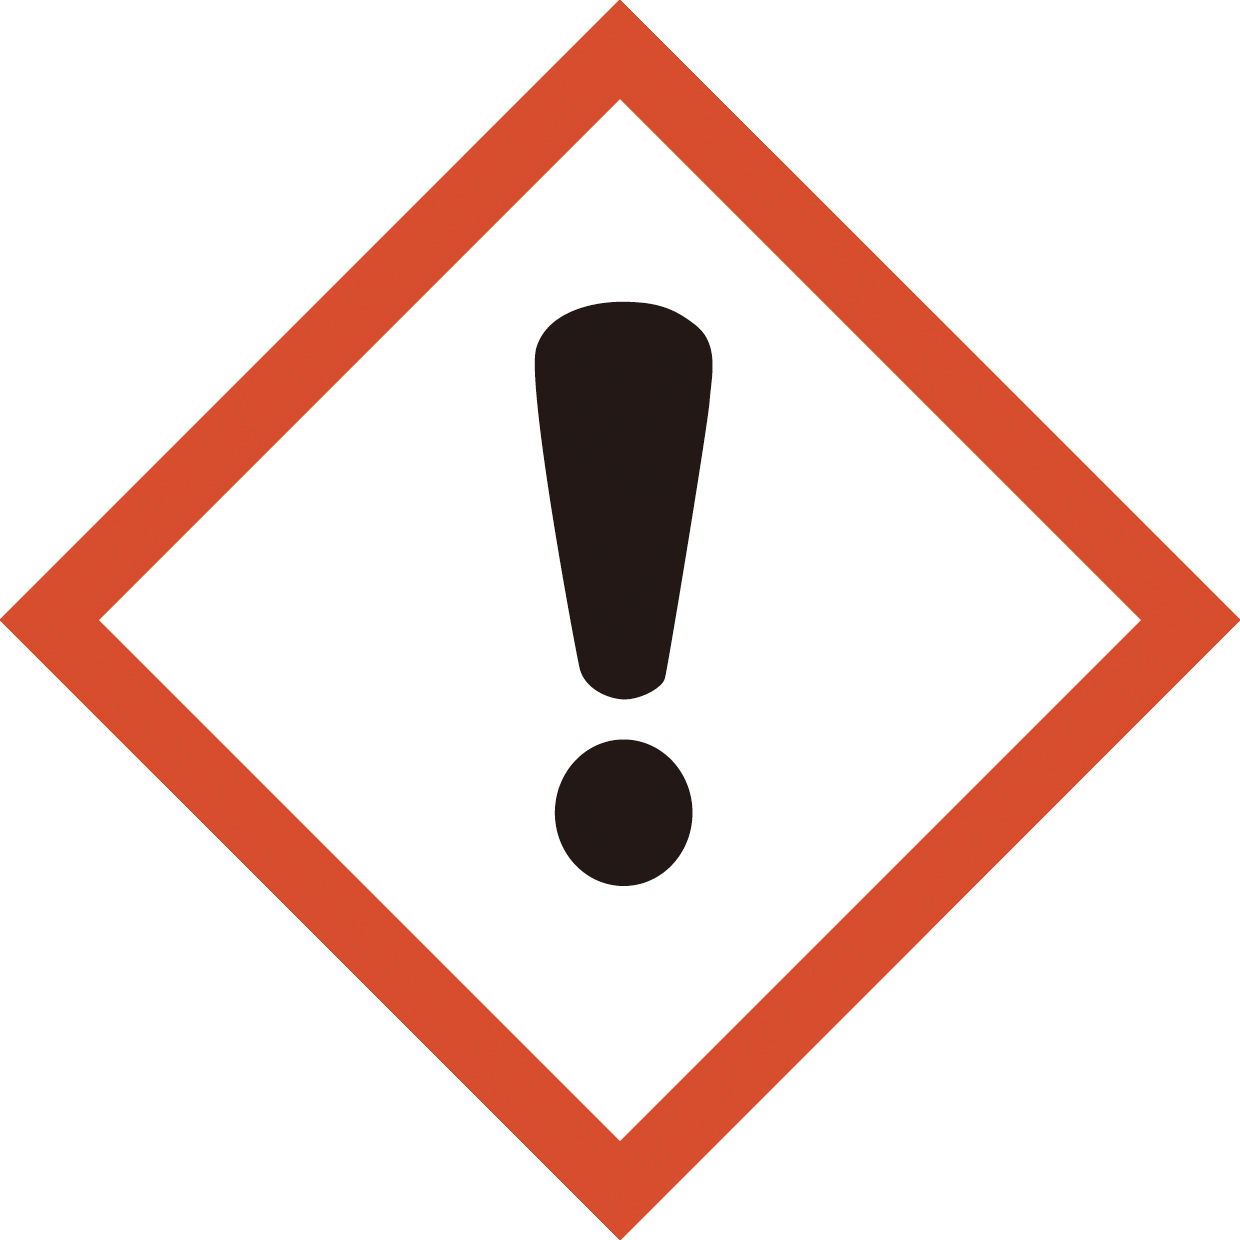 Danger clipart simbol. Hazard symbol occupational safety